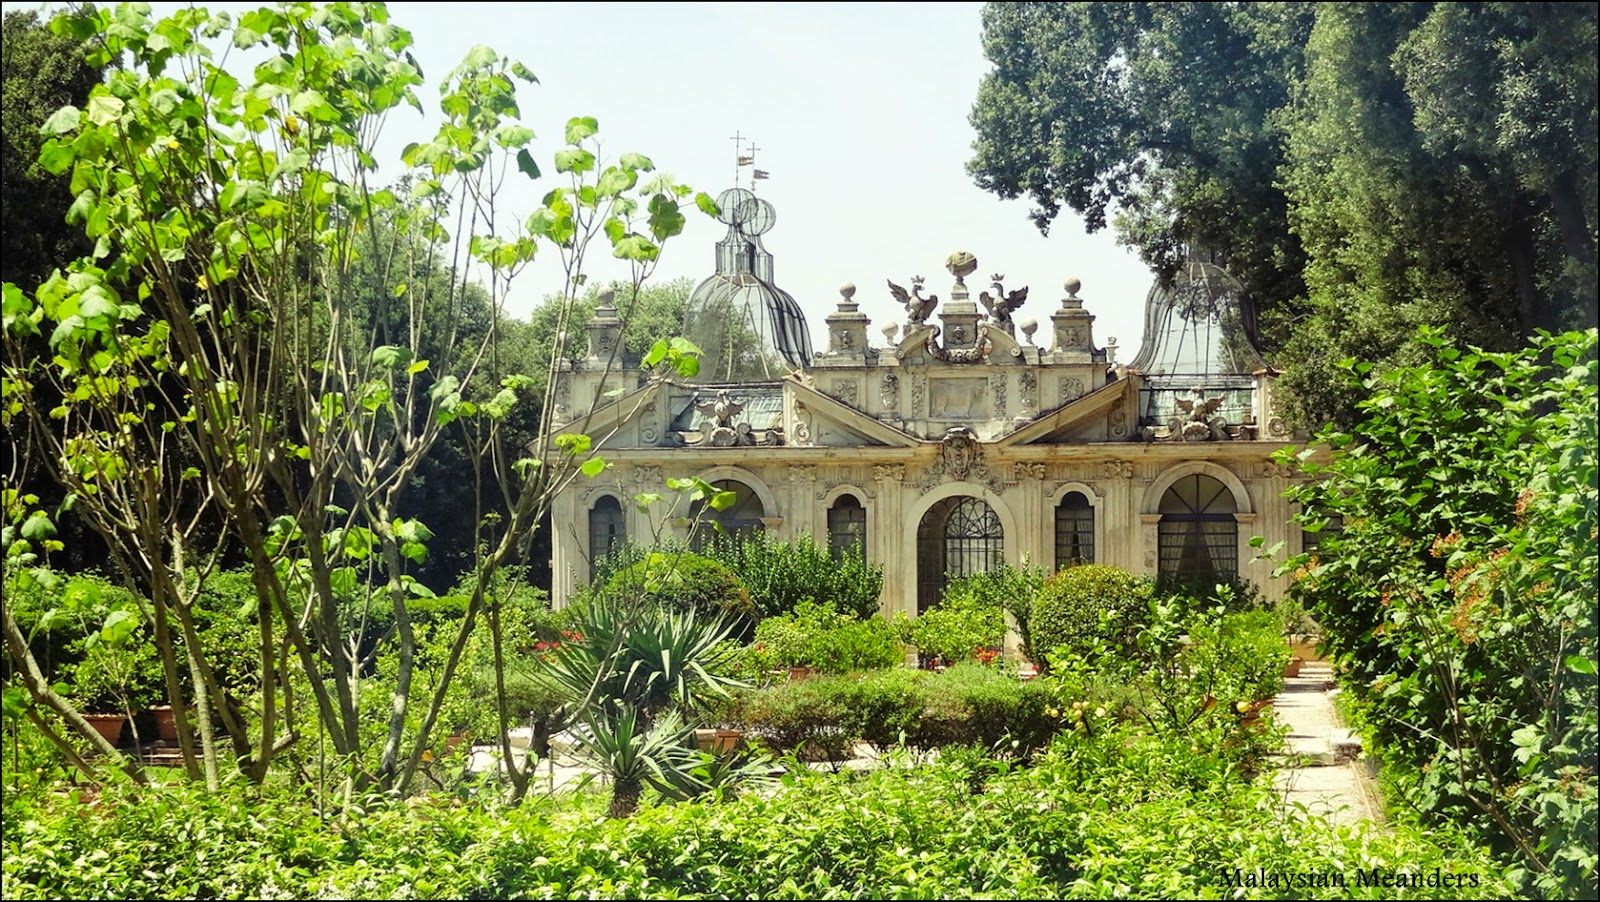 Malaysian Meanders Villa Borghese Enjoy The Outdoors In Rome